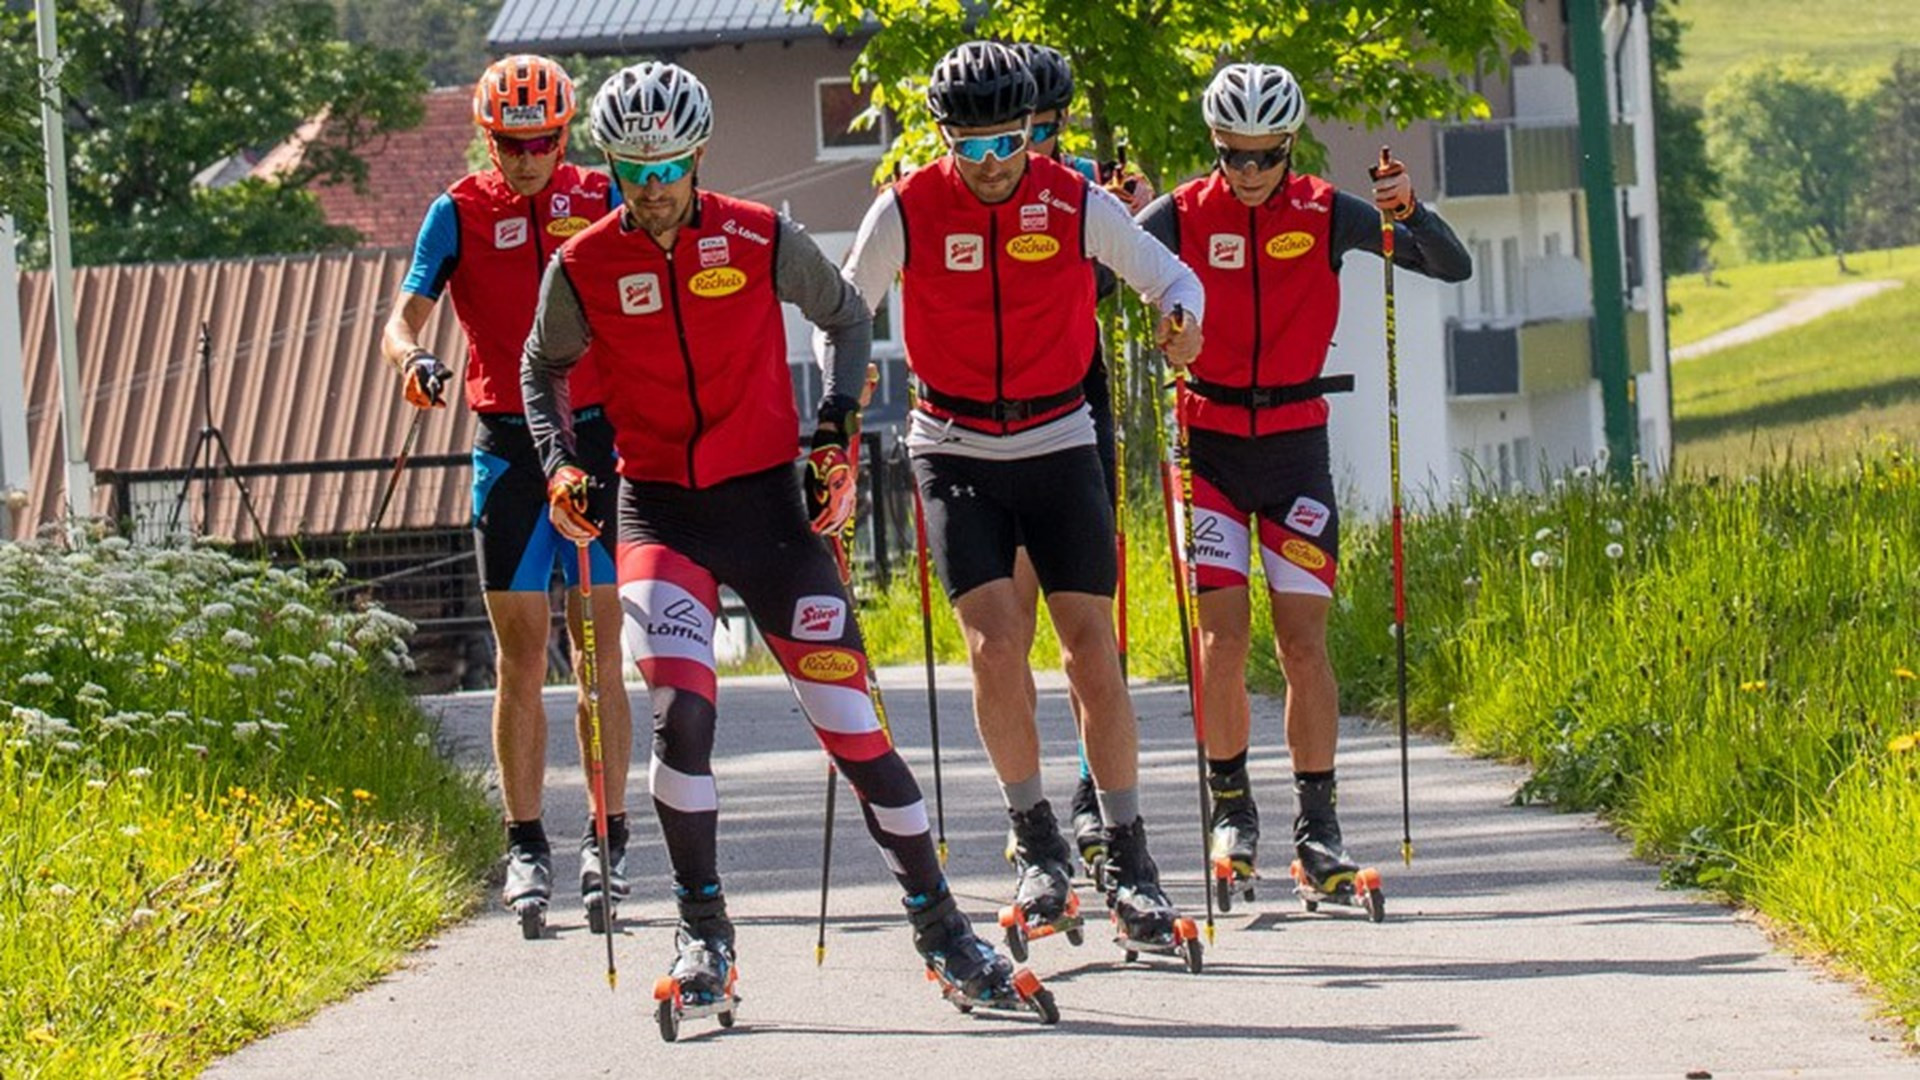 The Austrian team is also using roller skis ©OSV